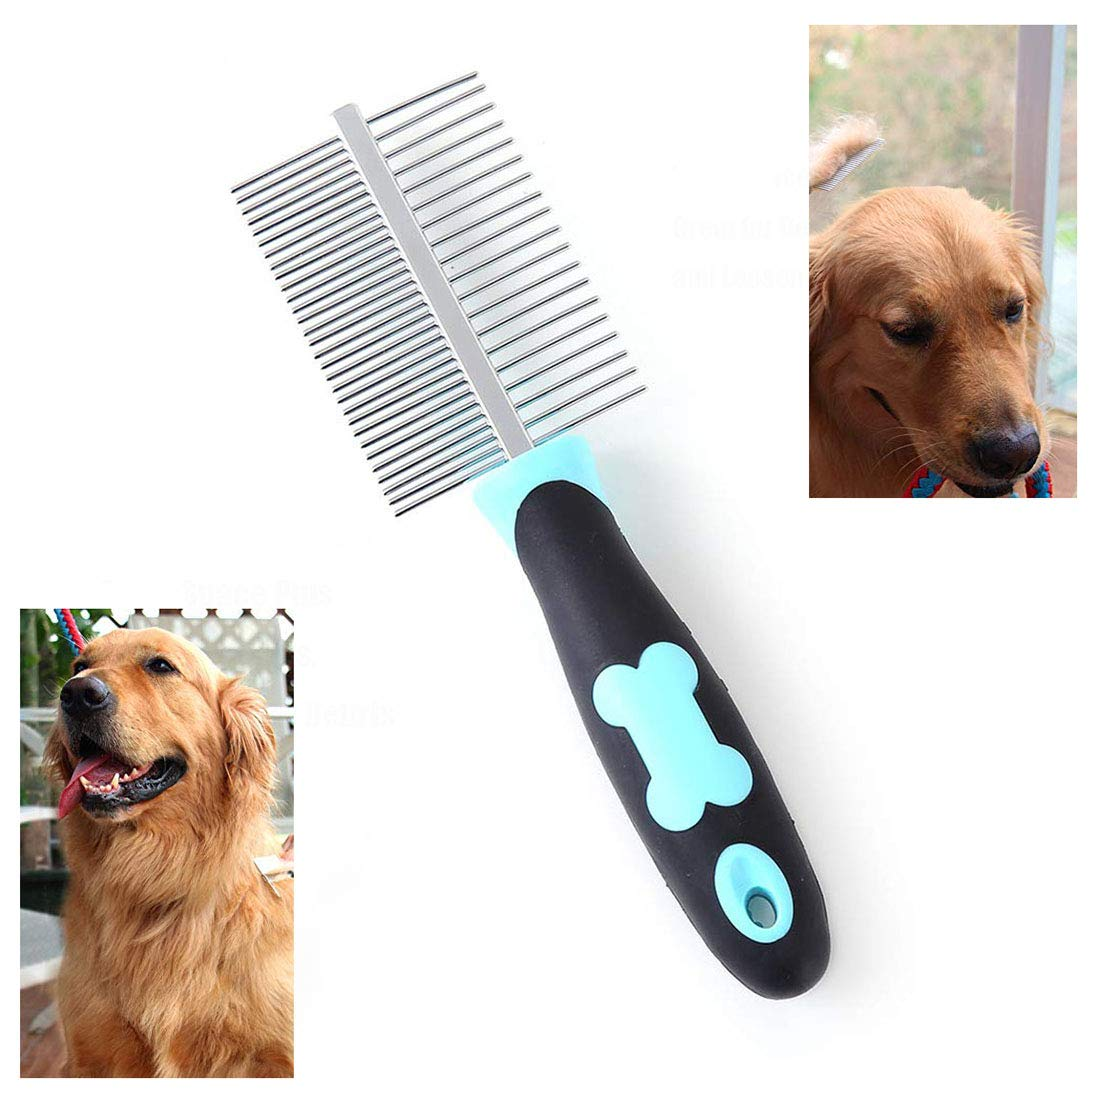 PETGDS Dog Grooming Comb Medium and Large Pets with Long Hair Pet Grooming Tool for Small Pet Double-Sided Flea Comb Cat Stainless Steel Shedding Brush with Slip-Proof Handle